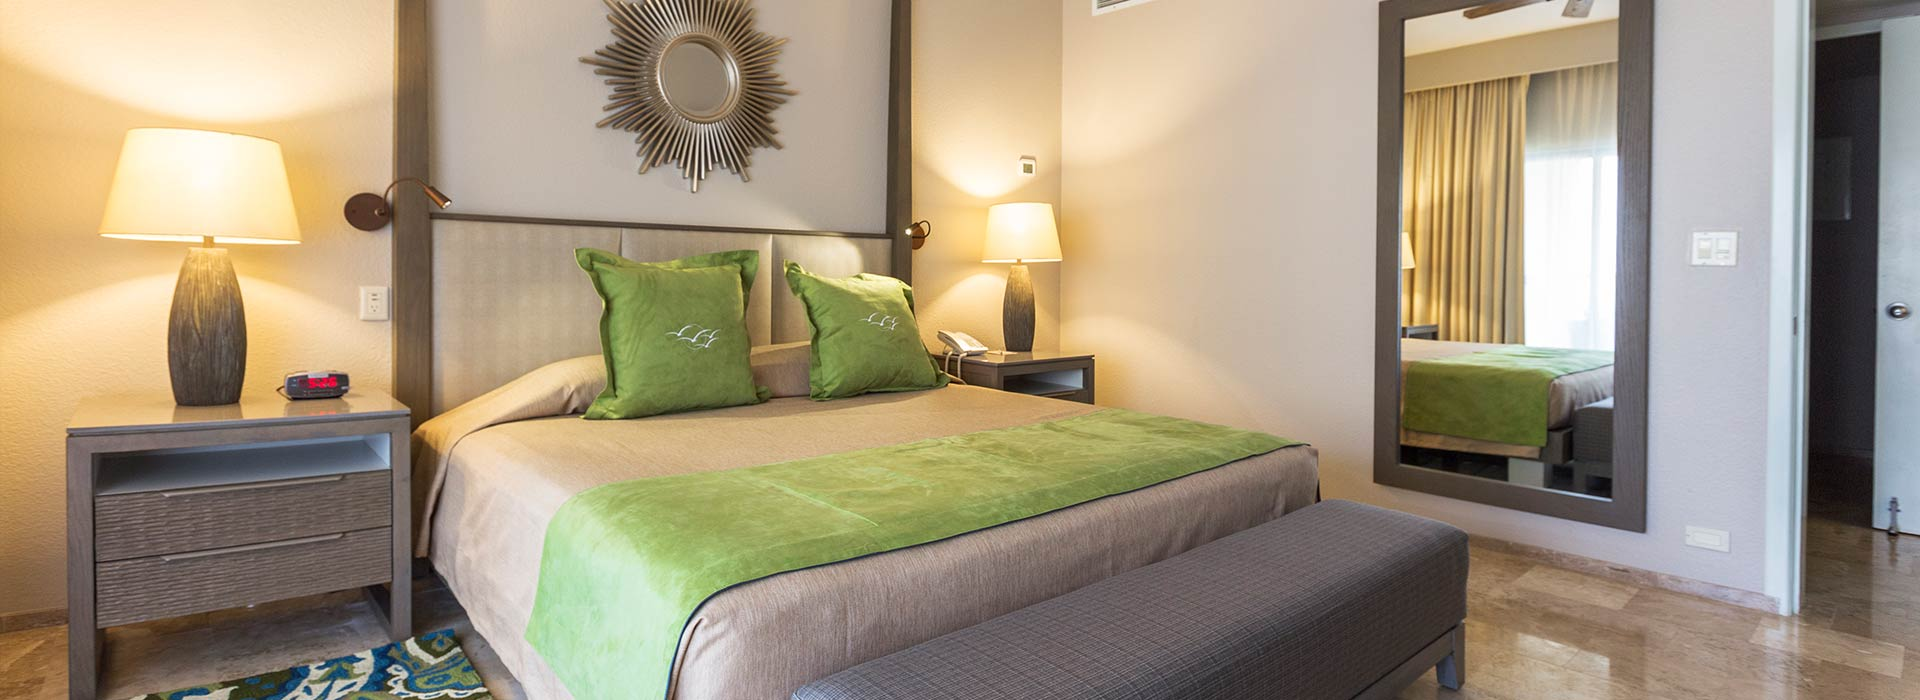 Beachfront villas one bedroom with king size bed in Cancun beachfront Resort